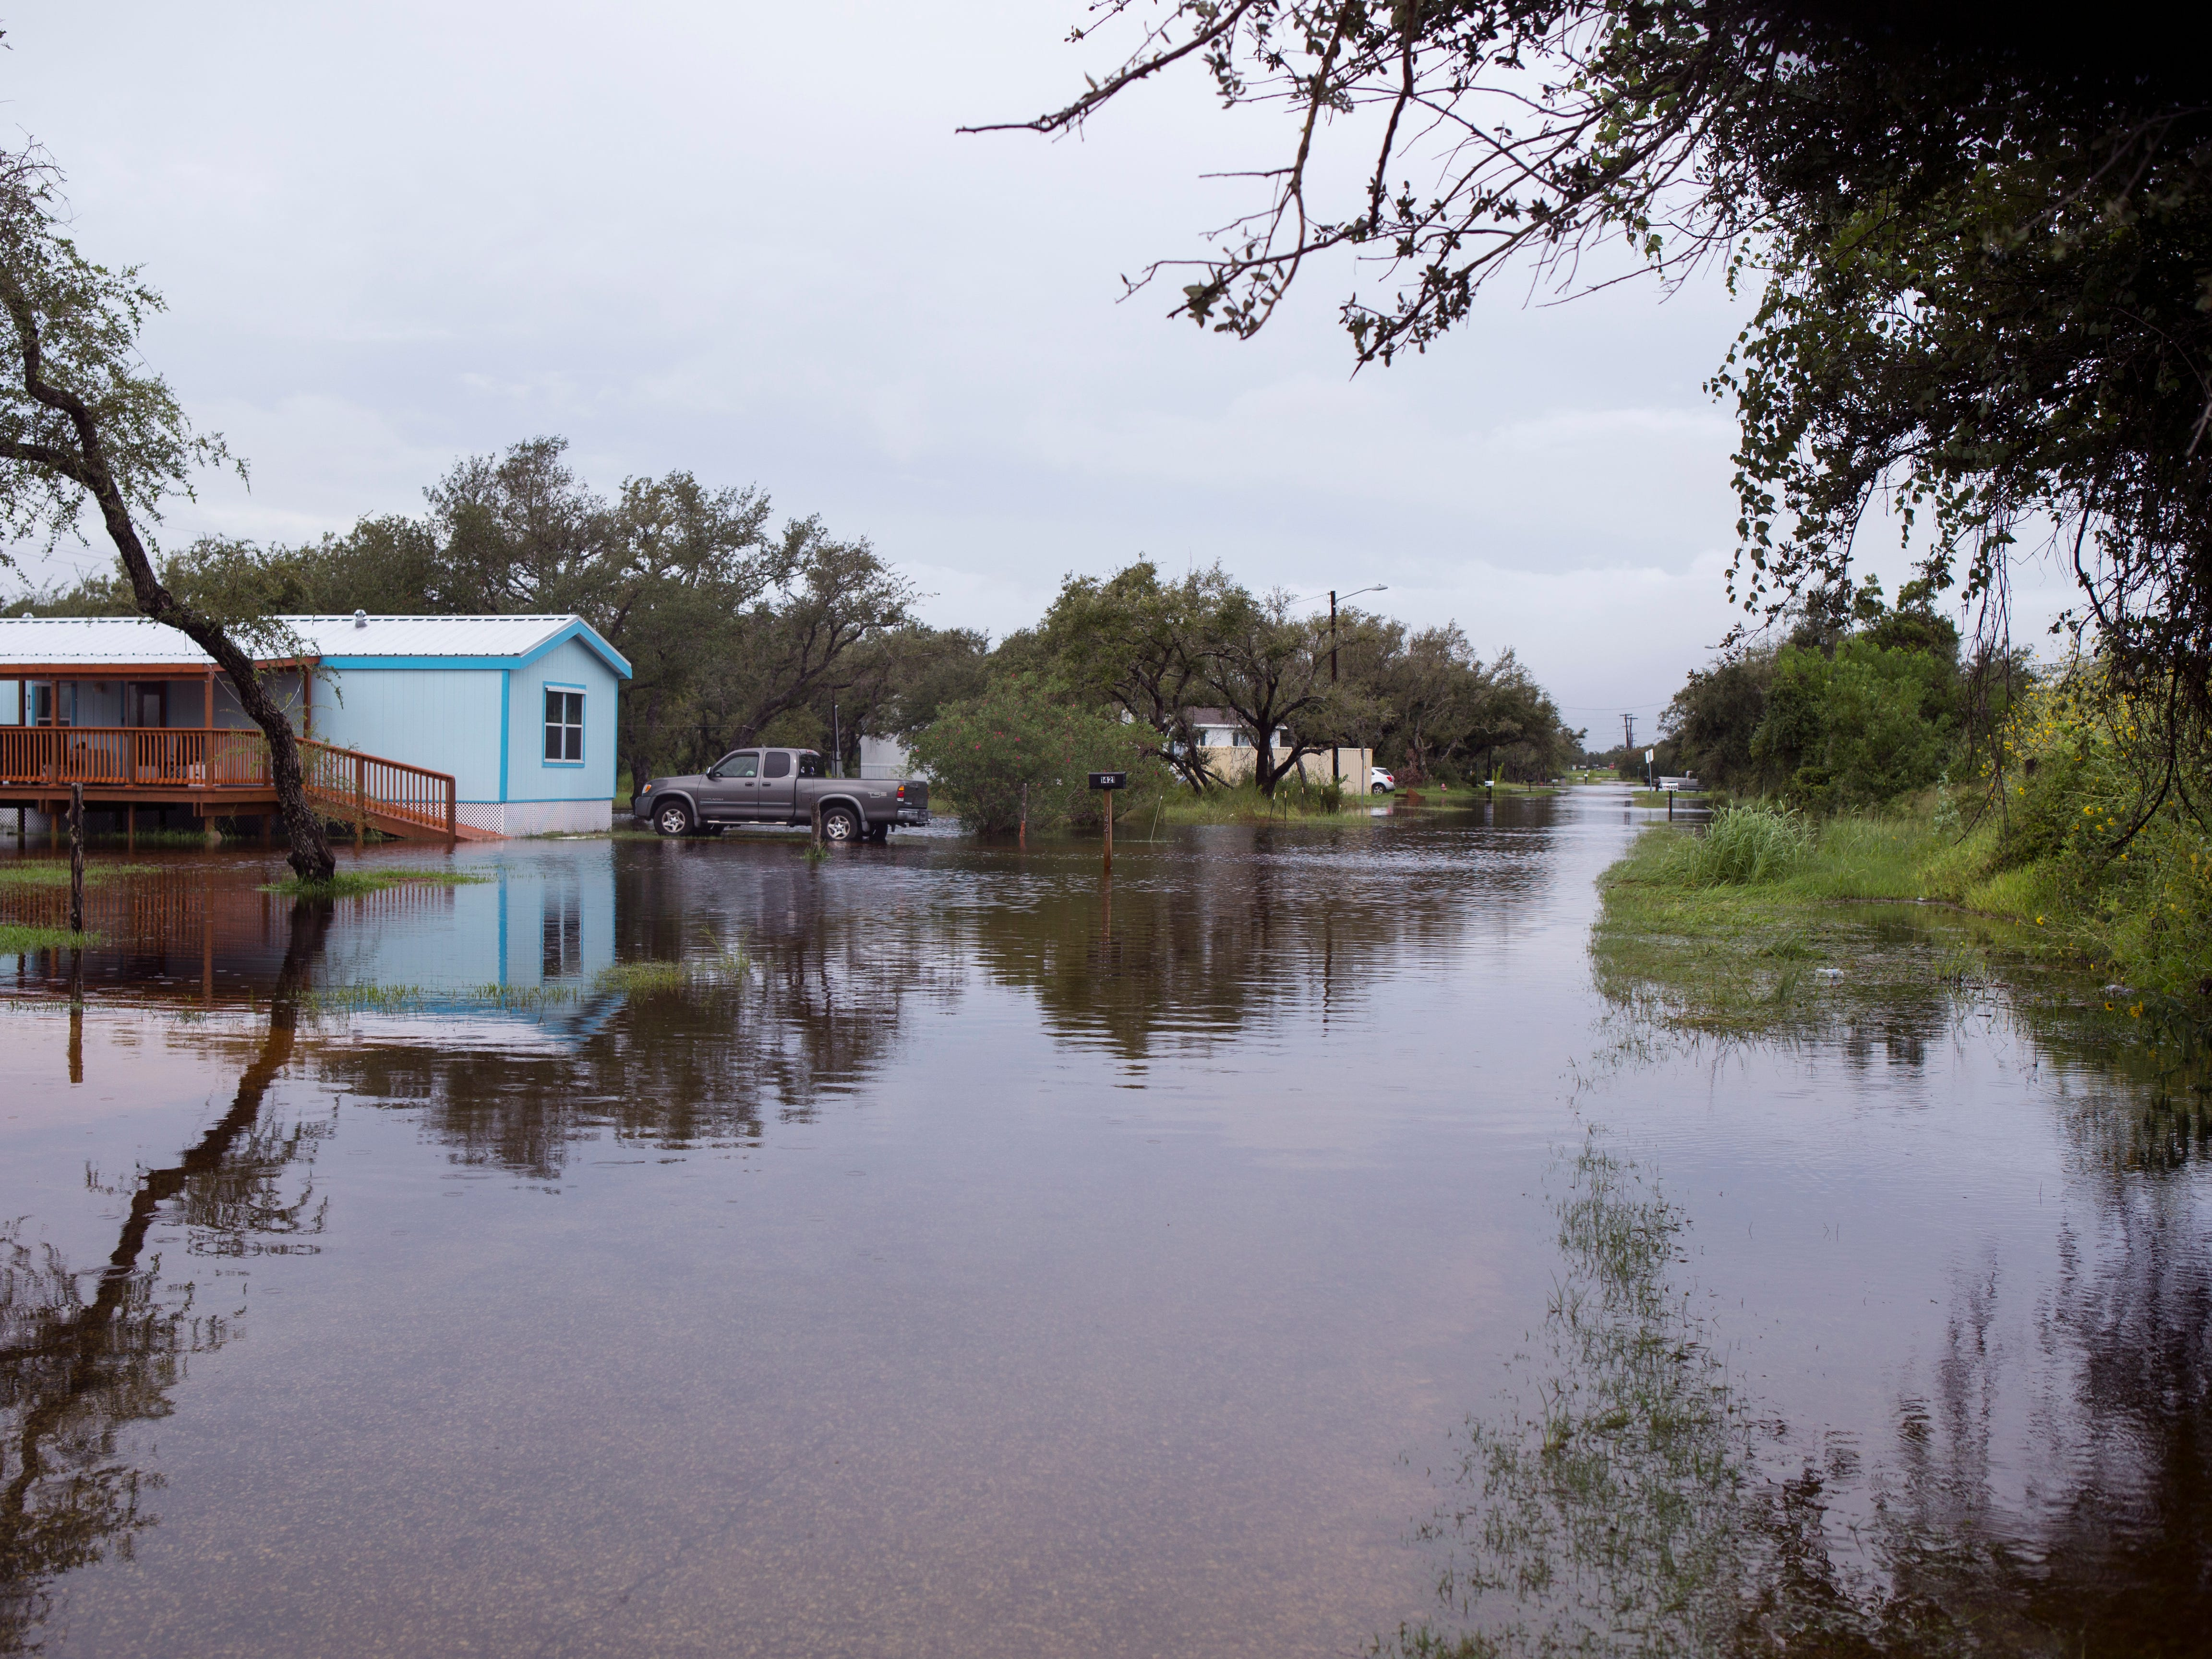 Ibis Drive in Rockport was flooded Saturday, September 15, 2018 due to high water.